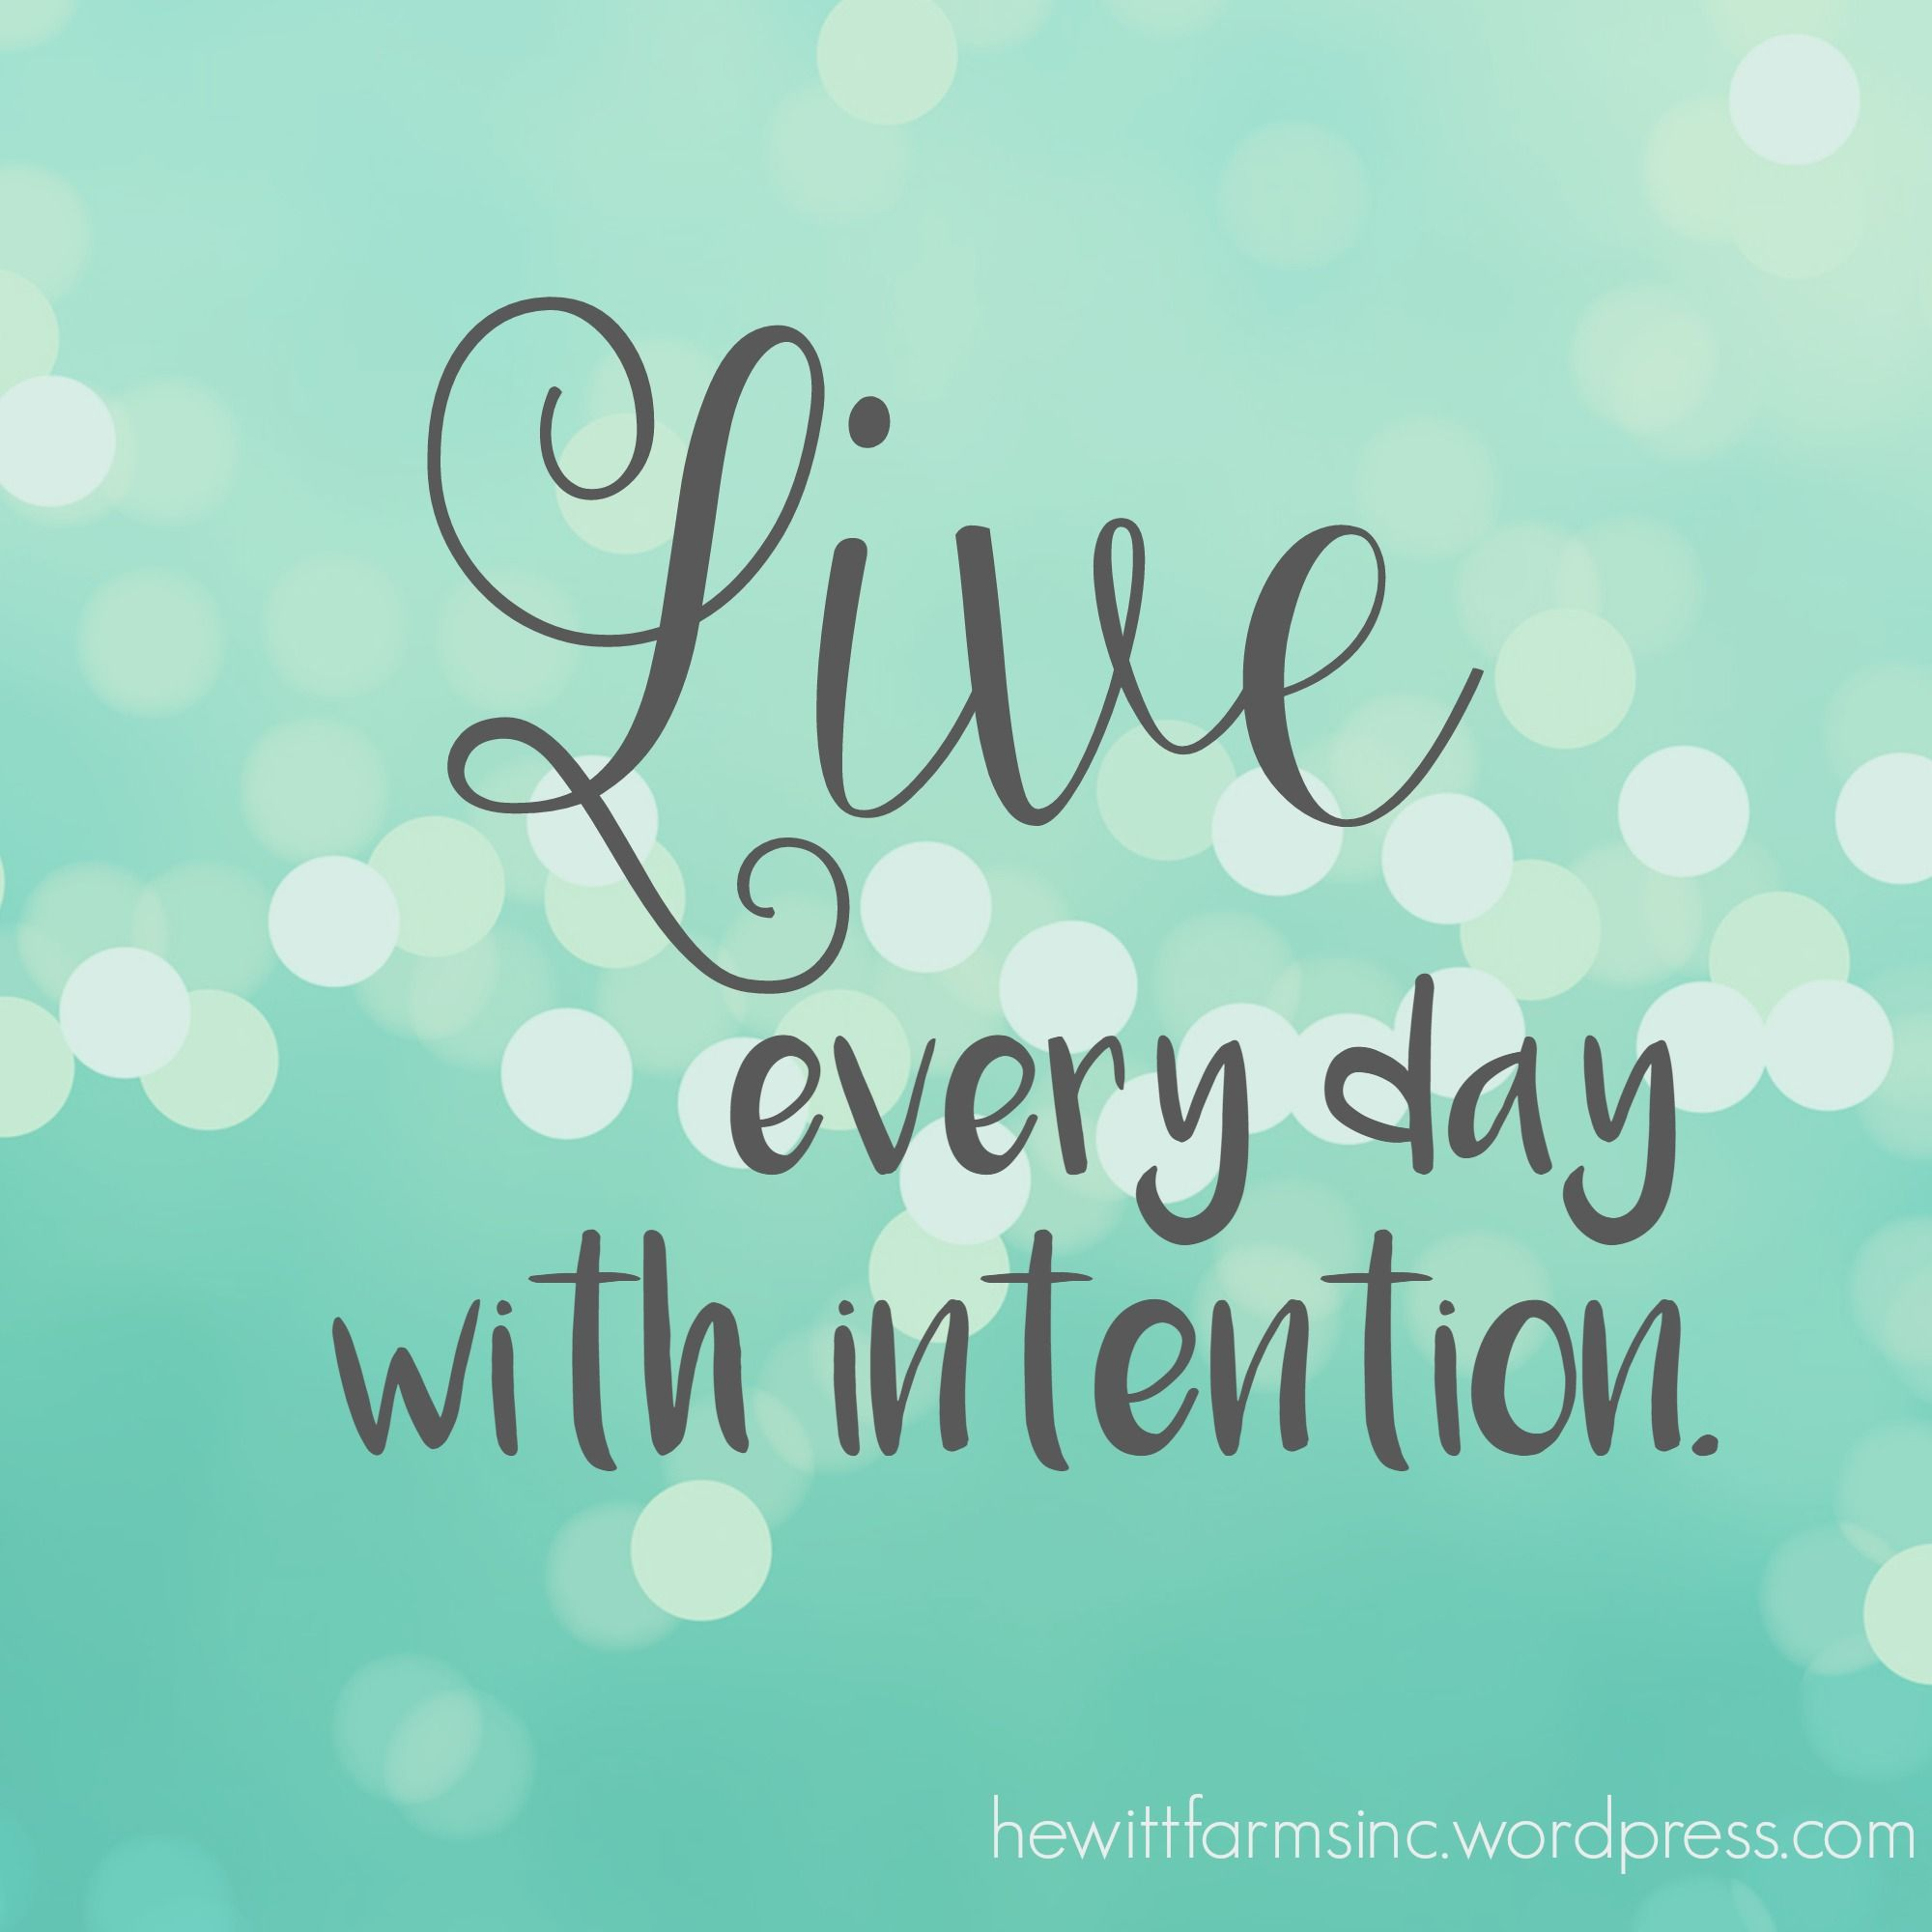 Live life with intention in 2016!